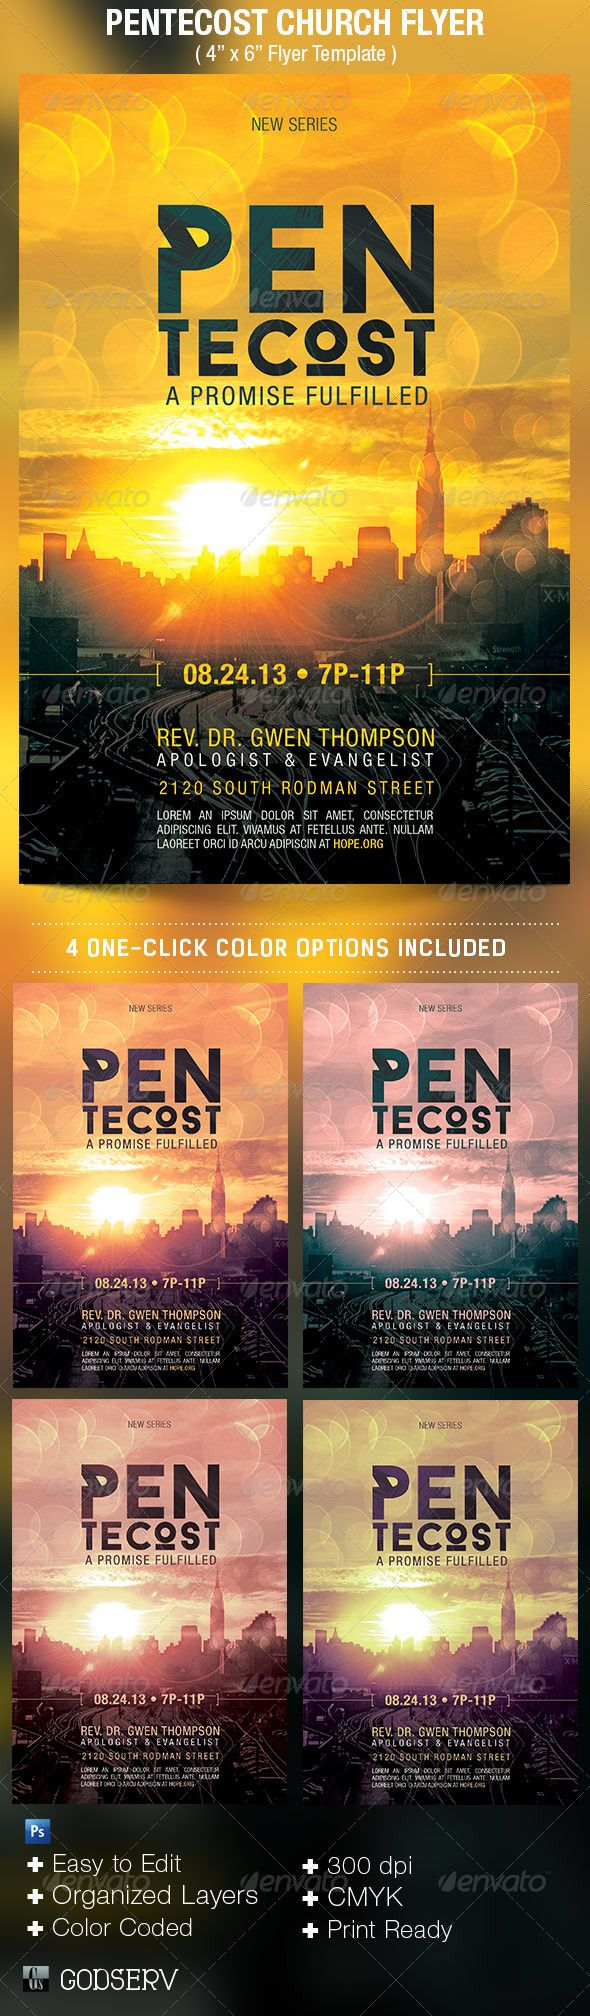 Pentecost Church Flyer Template  Pentecost Flyers And Flyer Template